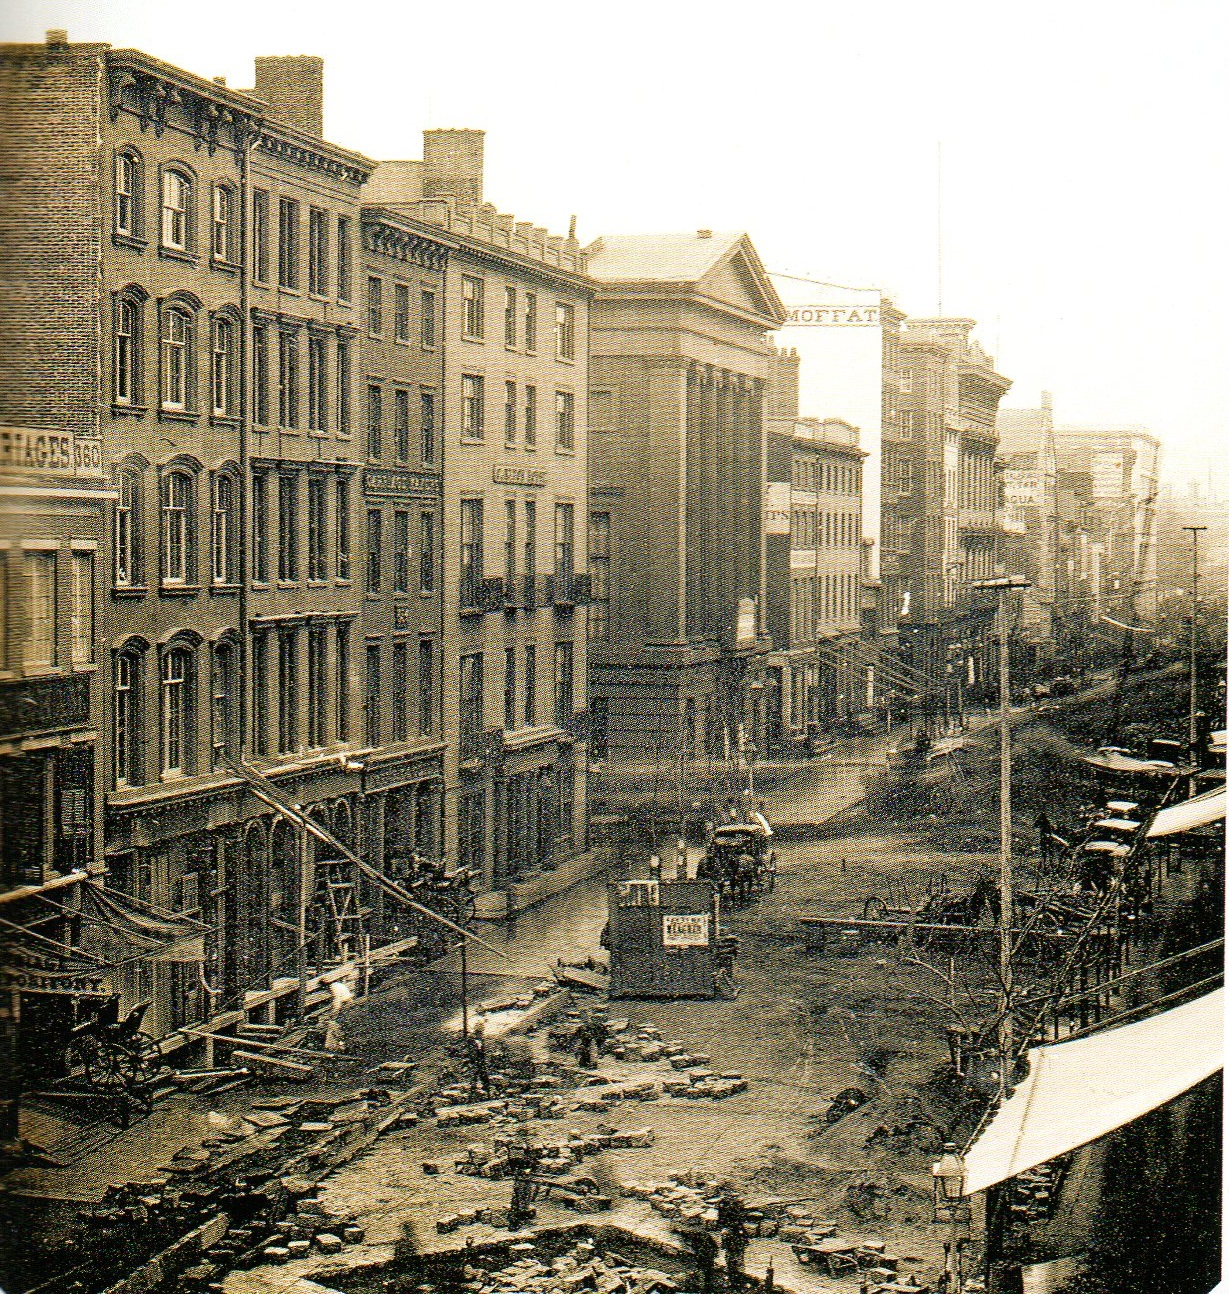 map of leonard street new york with Is This The Oldest Photograph Of New York on Cant Pick Your Family The Houses From The Gilmore Girls together with World Cup 2014 American S b 5479819 furthermore 1021 furthermore Watch as well Is This The Oldest Photograph Of New York.